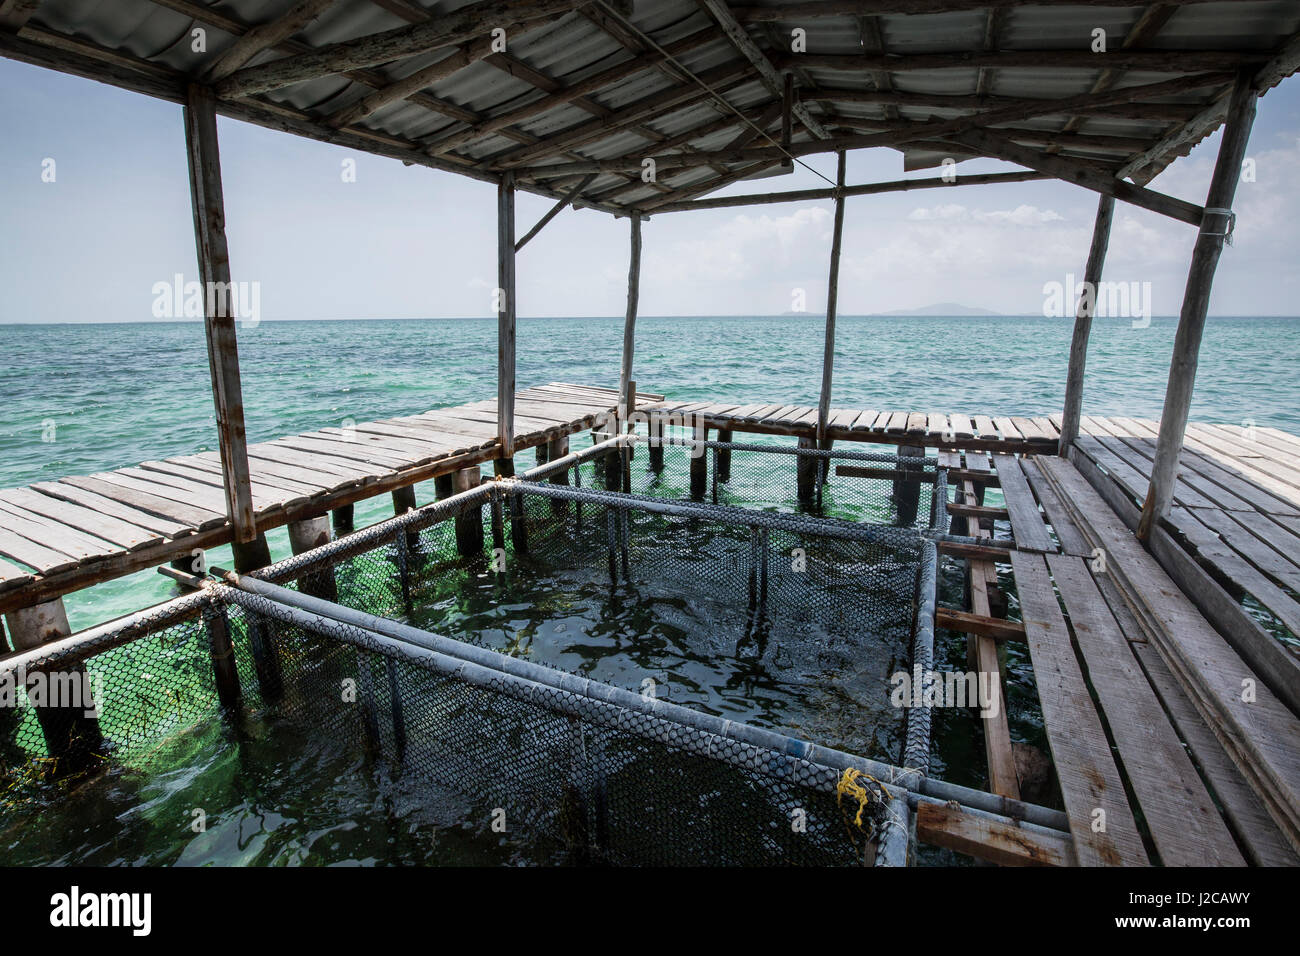 Landscape view from a lobster aggregation house with the Isle of Youth in the background, Southern Coast, Cuba - Stock Image